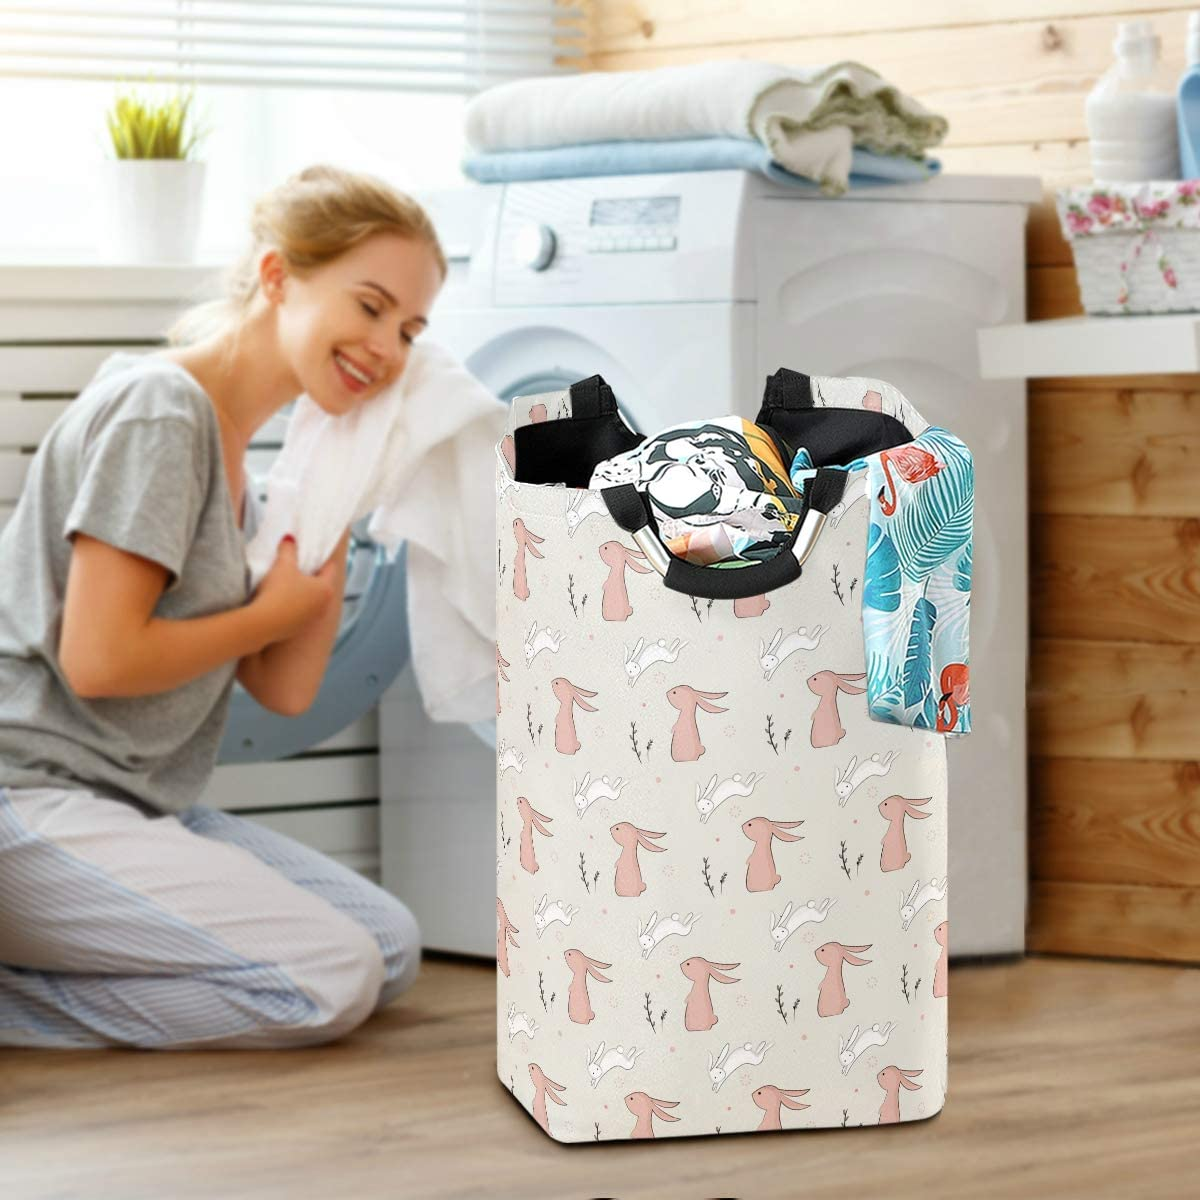 Waterproof Inner Nander Cute Bunny Animal Laundry Hamper Oxford Cloth Fabric Laundry Basket Collapsible Storage Bin with Aluminum Circle Handles